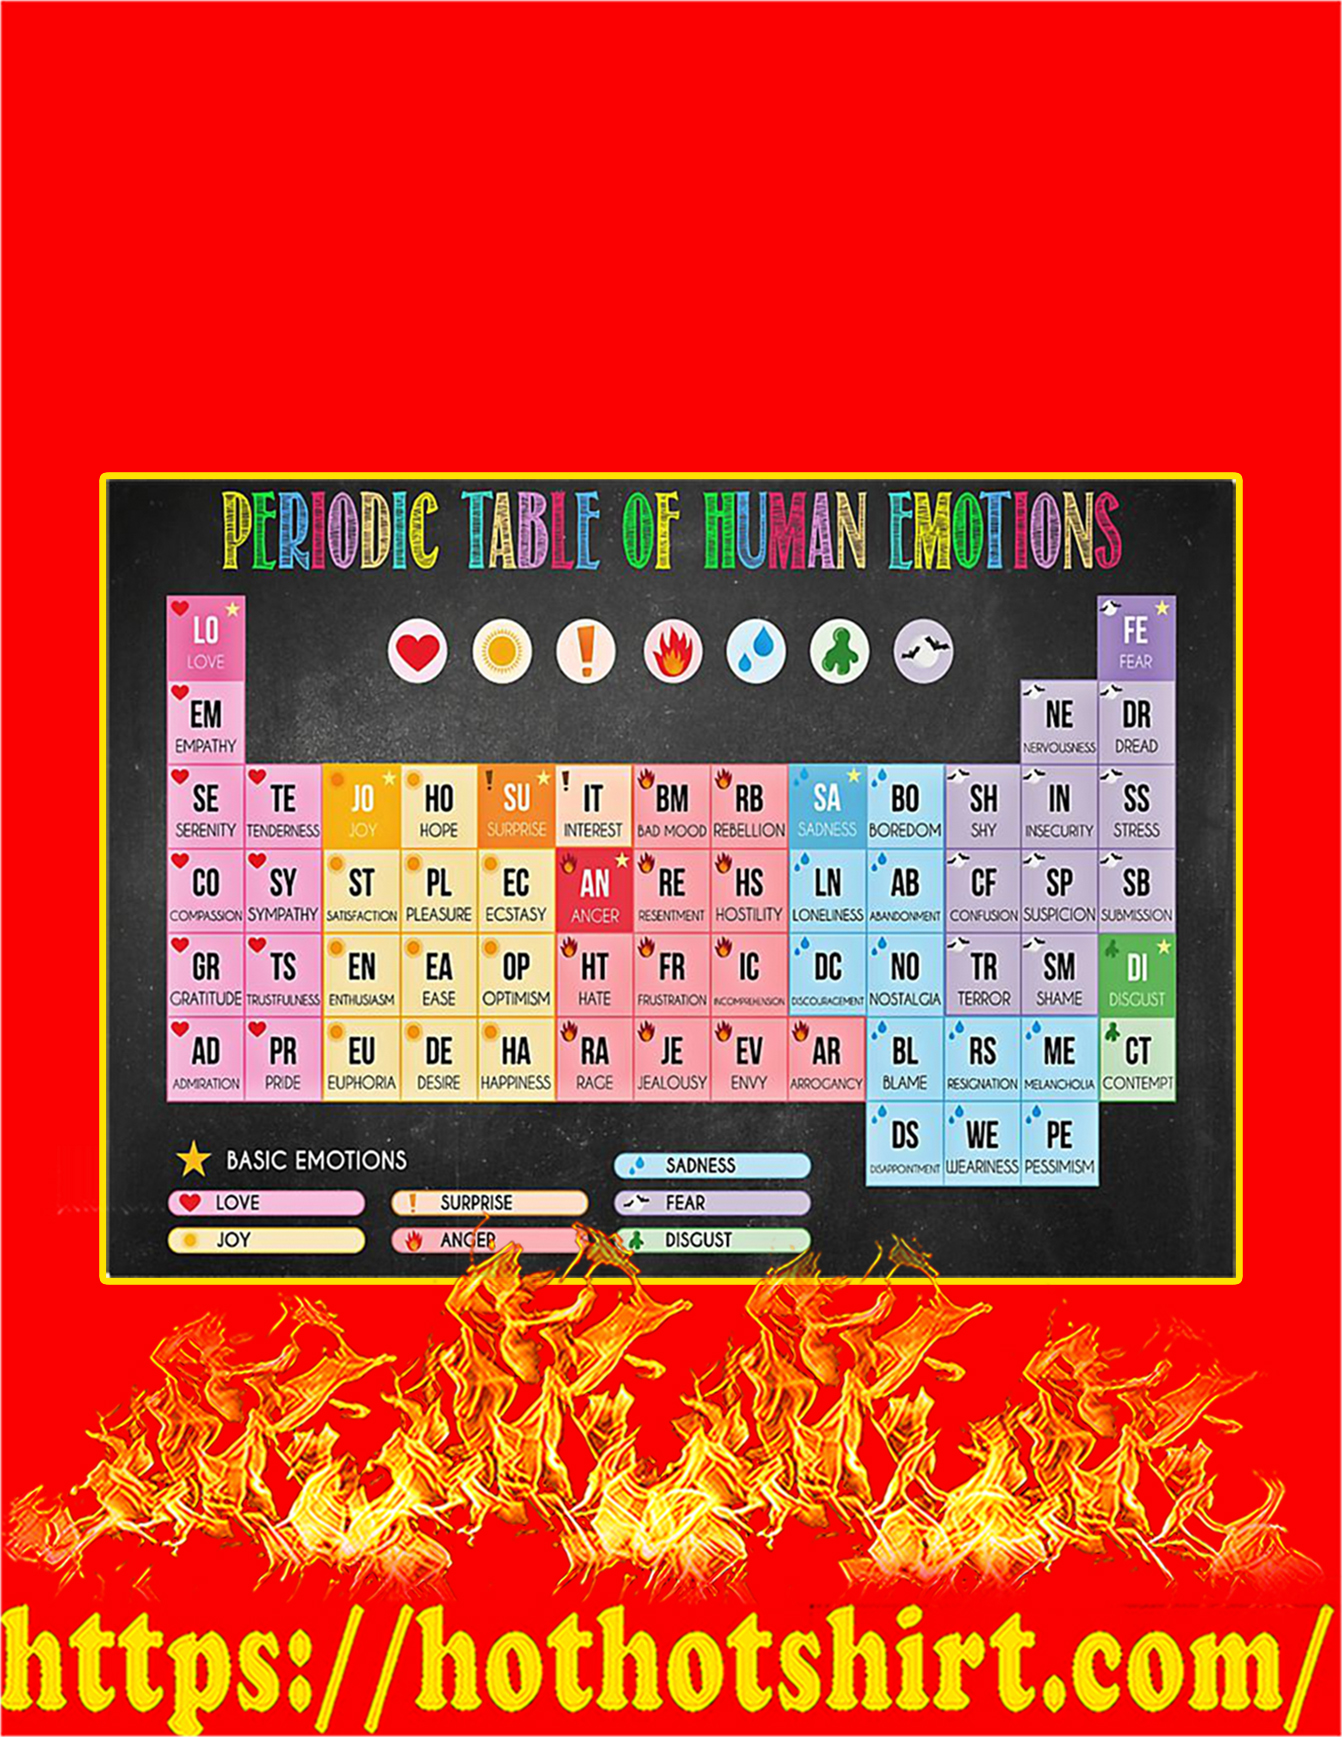 Social worker Periodic table of human emotions poster - A2